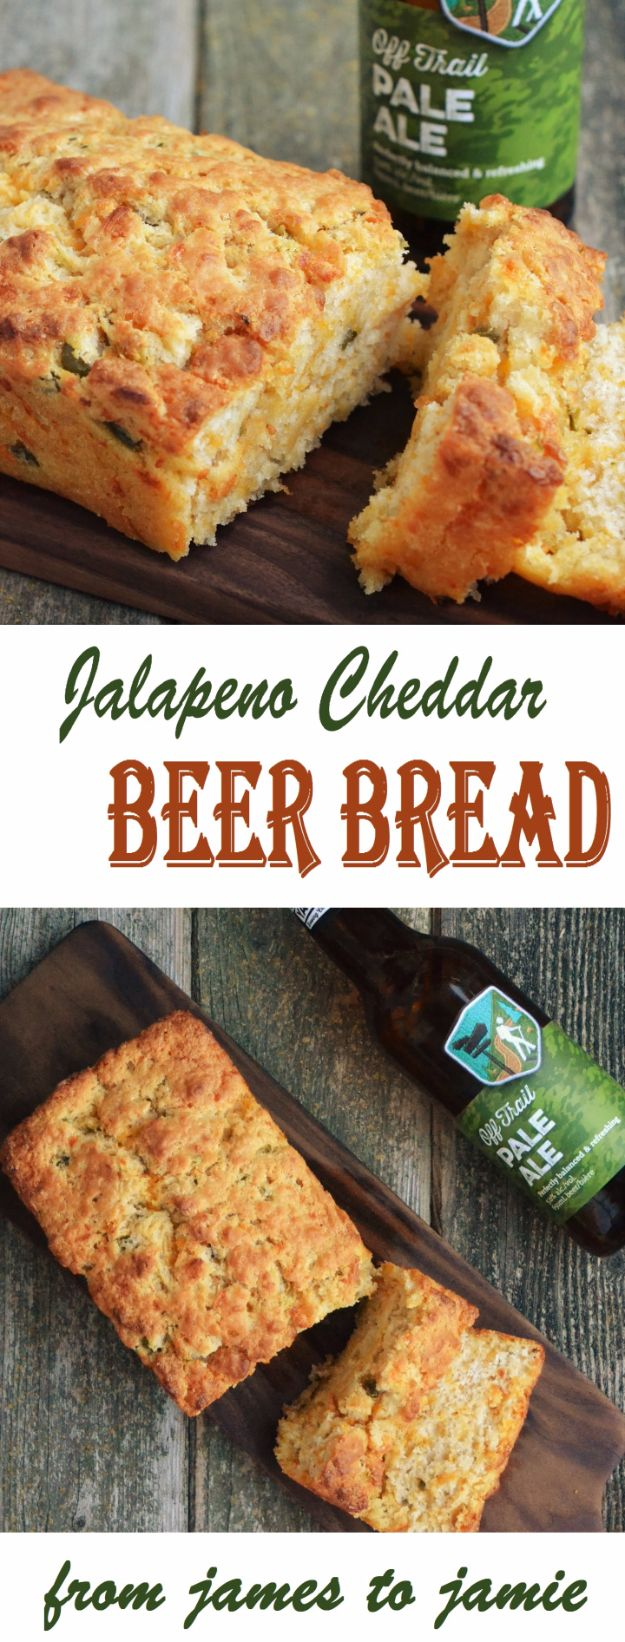 Best Recipes Made With Beer - Jalapeno Cheddar Beer Bread - Easy Dinner, Lunch and Snack Recipe Ideas Made With Beer - Food for the Slow Cooker and Crockpot, Meat and Chicken Dishes, Appetizers, Homemade Pretzels, Summer BBQ Sauces and PArty Food Ideas